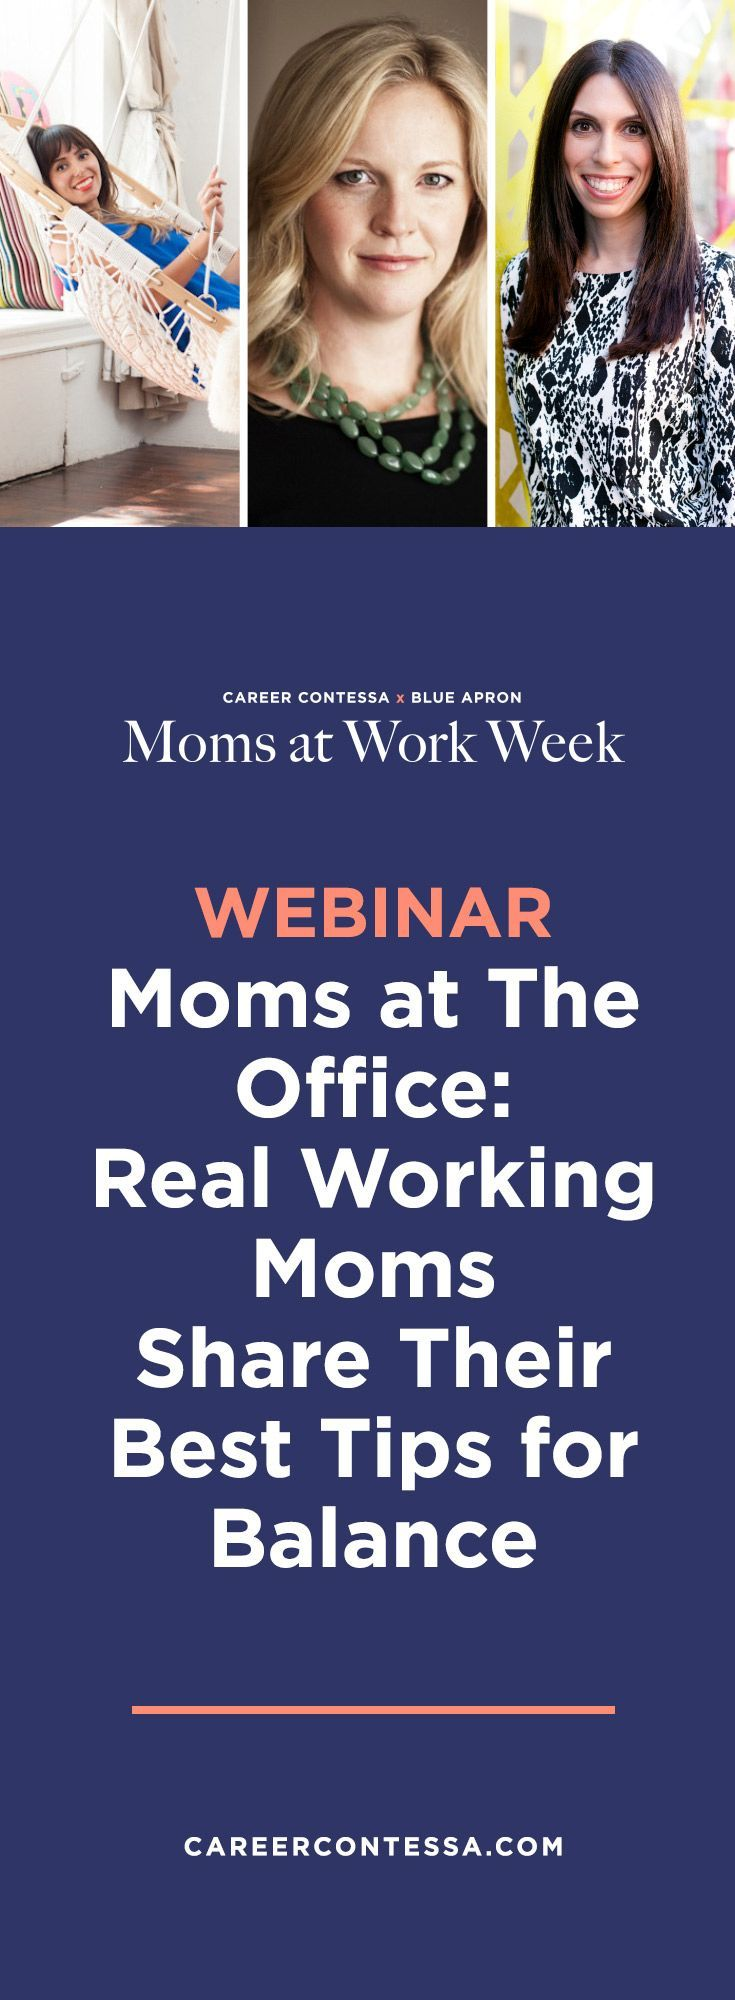 Blue apron hq address